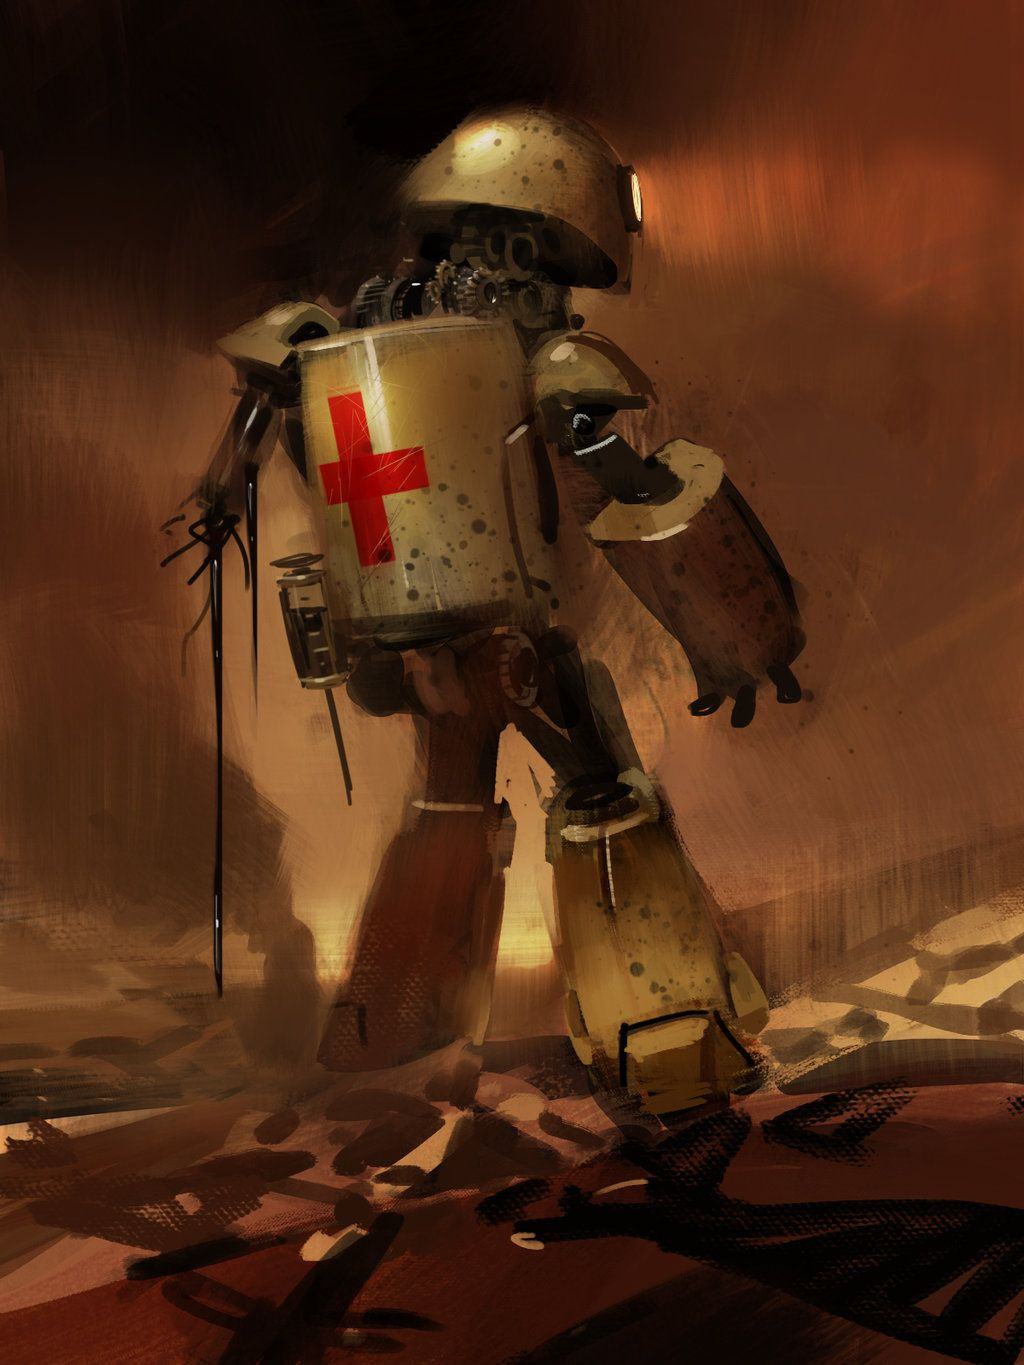 Mechanical Medic by medders on DeviantArt | Art and technology, Art, Fantasy  art